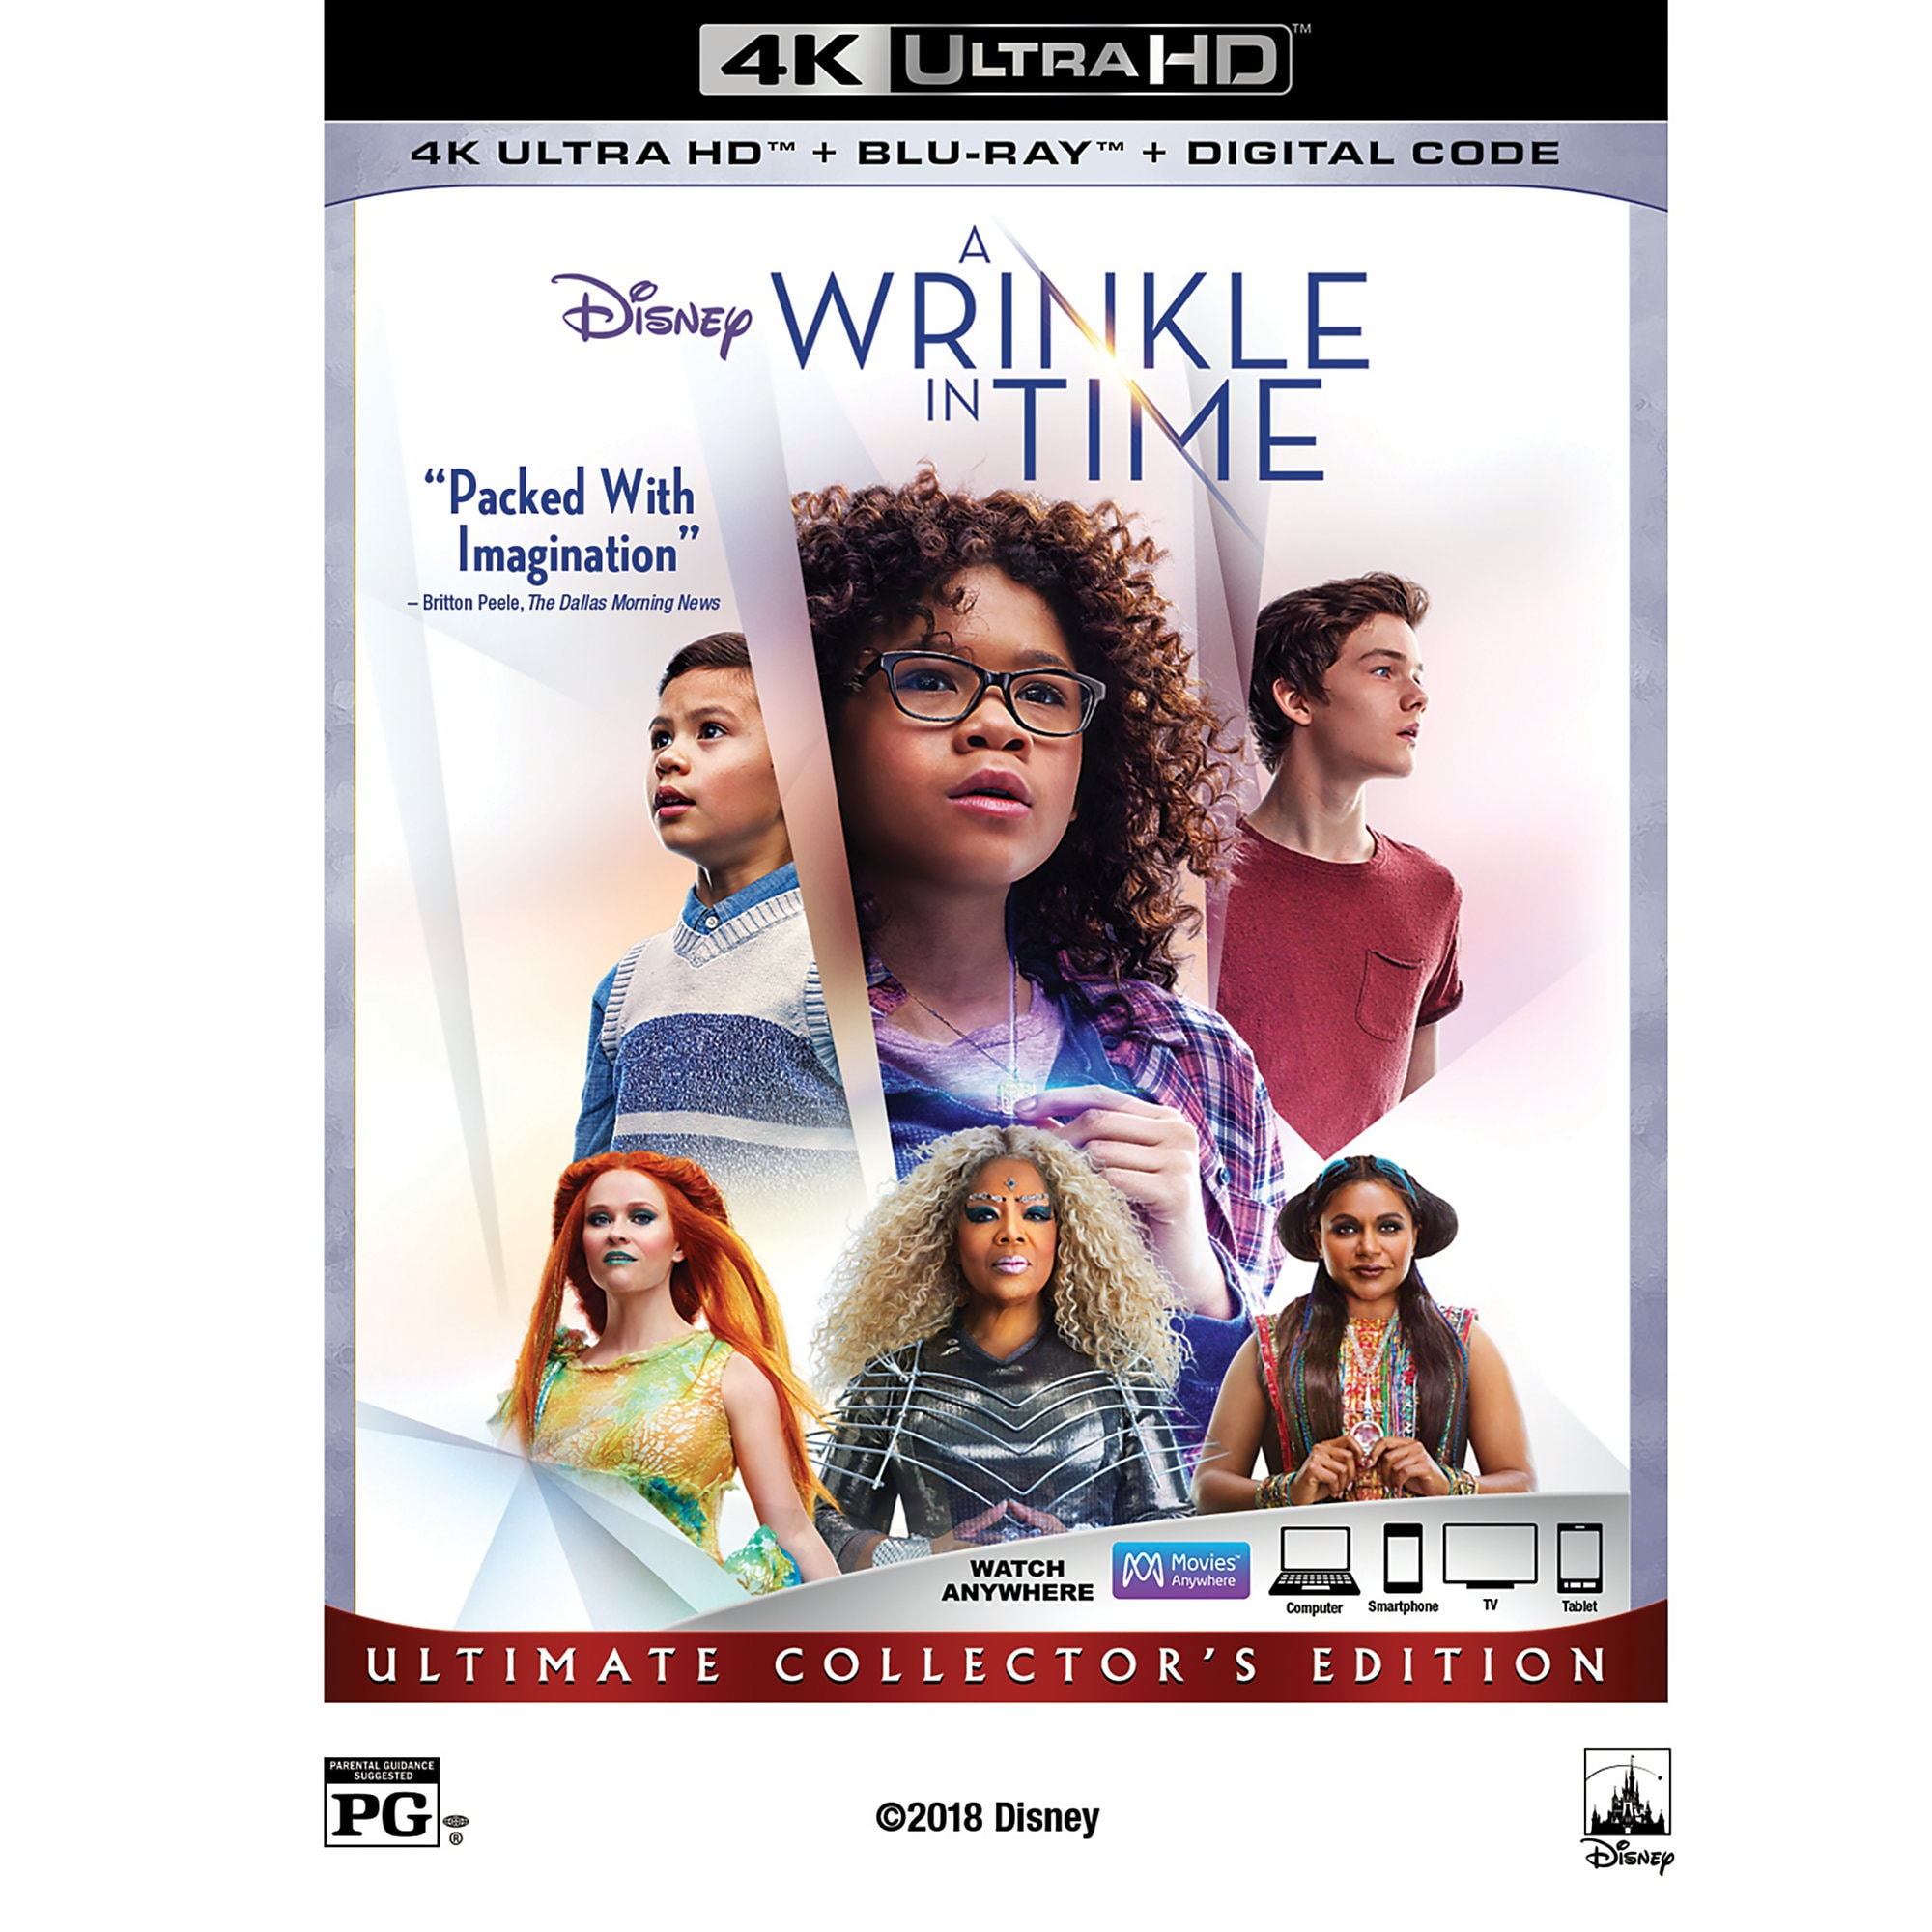 A Wrinkle in Time 4K Ultra HD